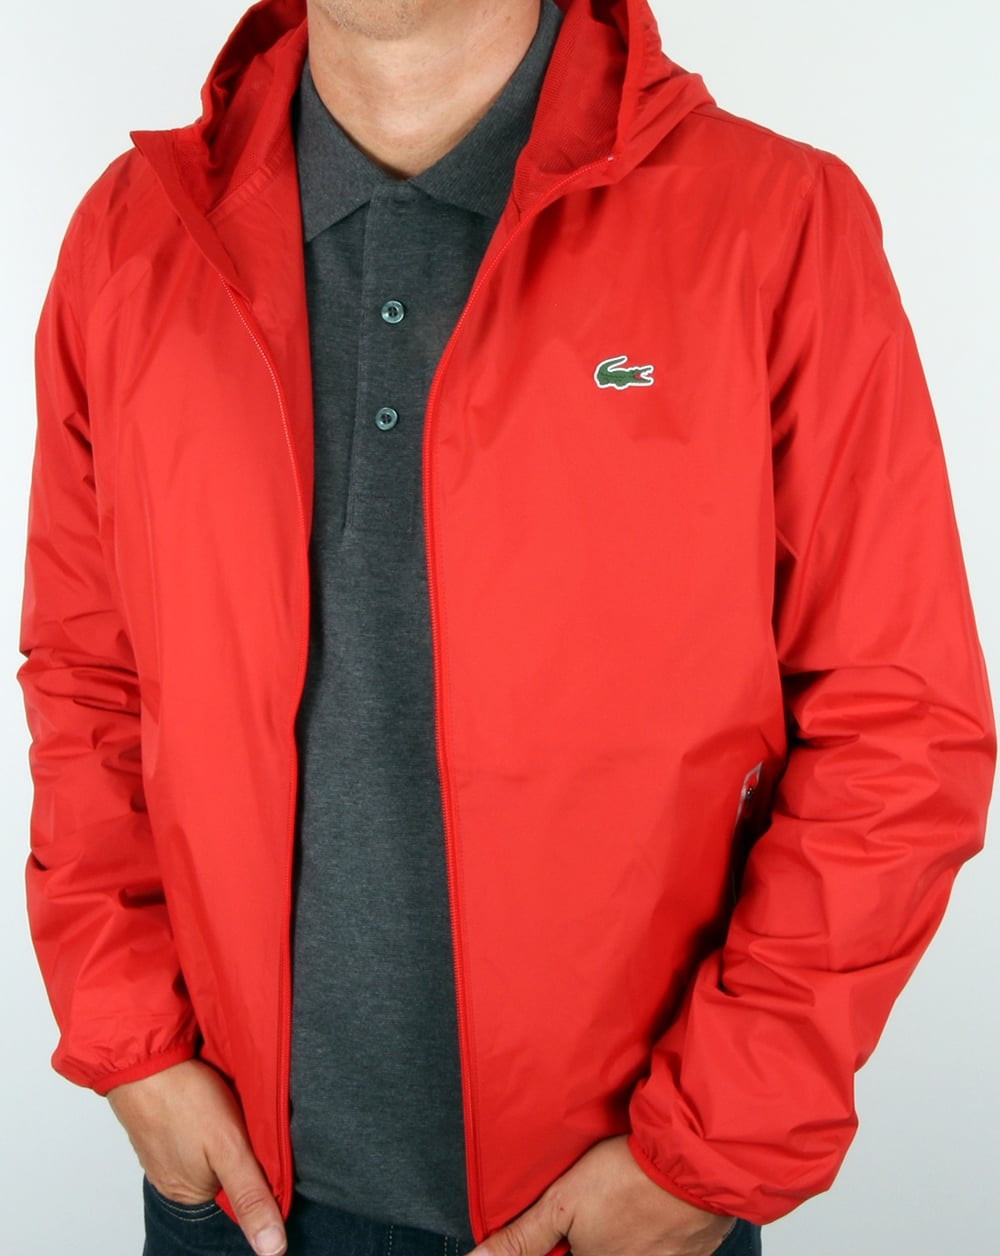 57d276e683 Lacoste Sport Tech Hooded Jacket Corrida Red